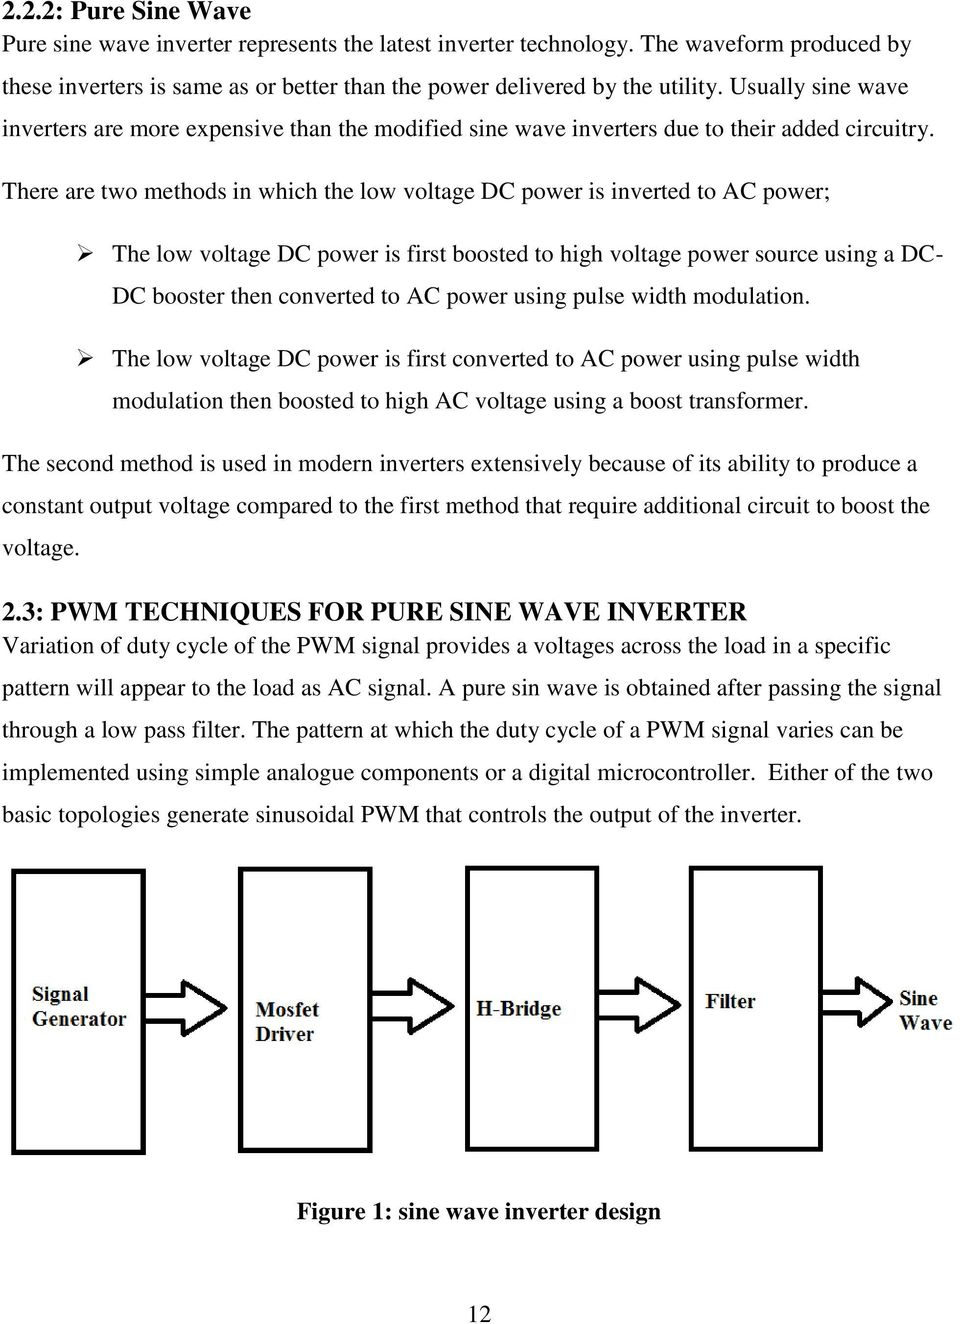 University Of Nairobi Pdf Sine Wave Design Modified Code For Inverter 12 There Are Two Methods In Which The Low Voltage Dc Power Is Inverted To Ac